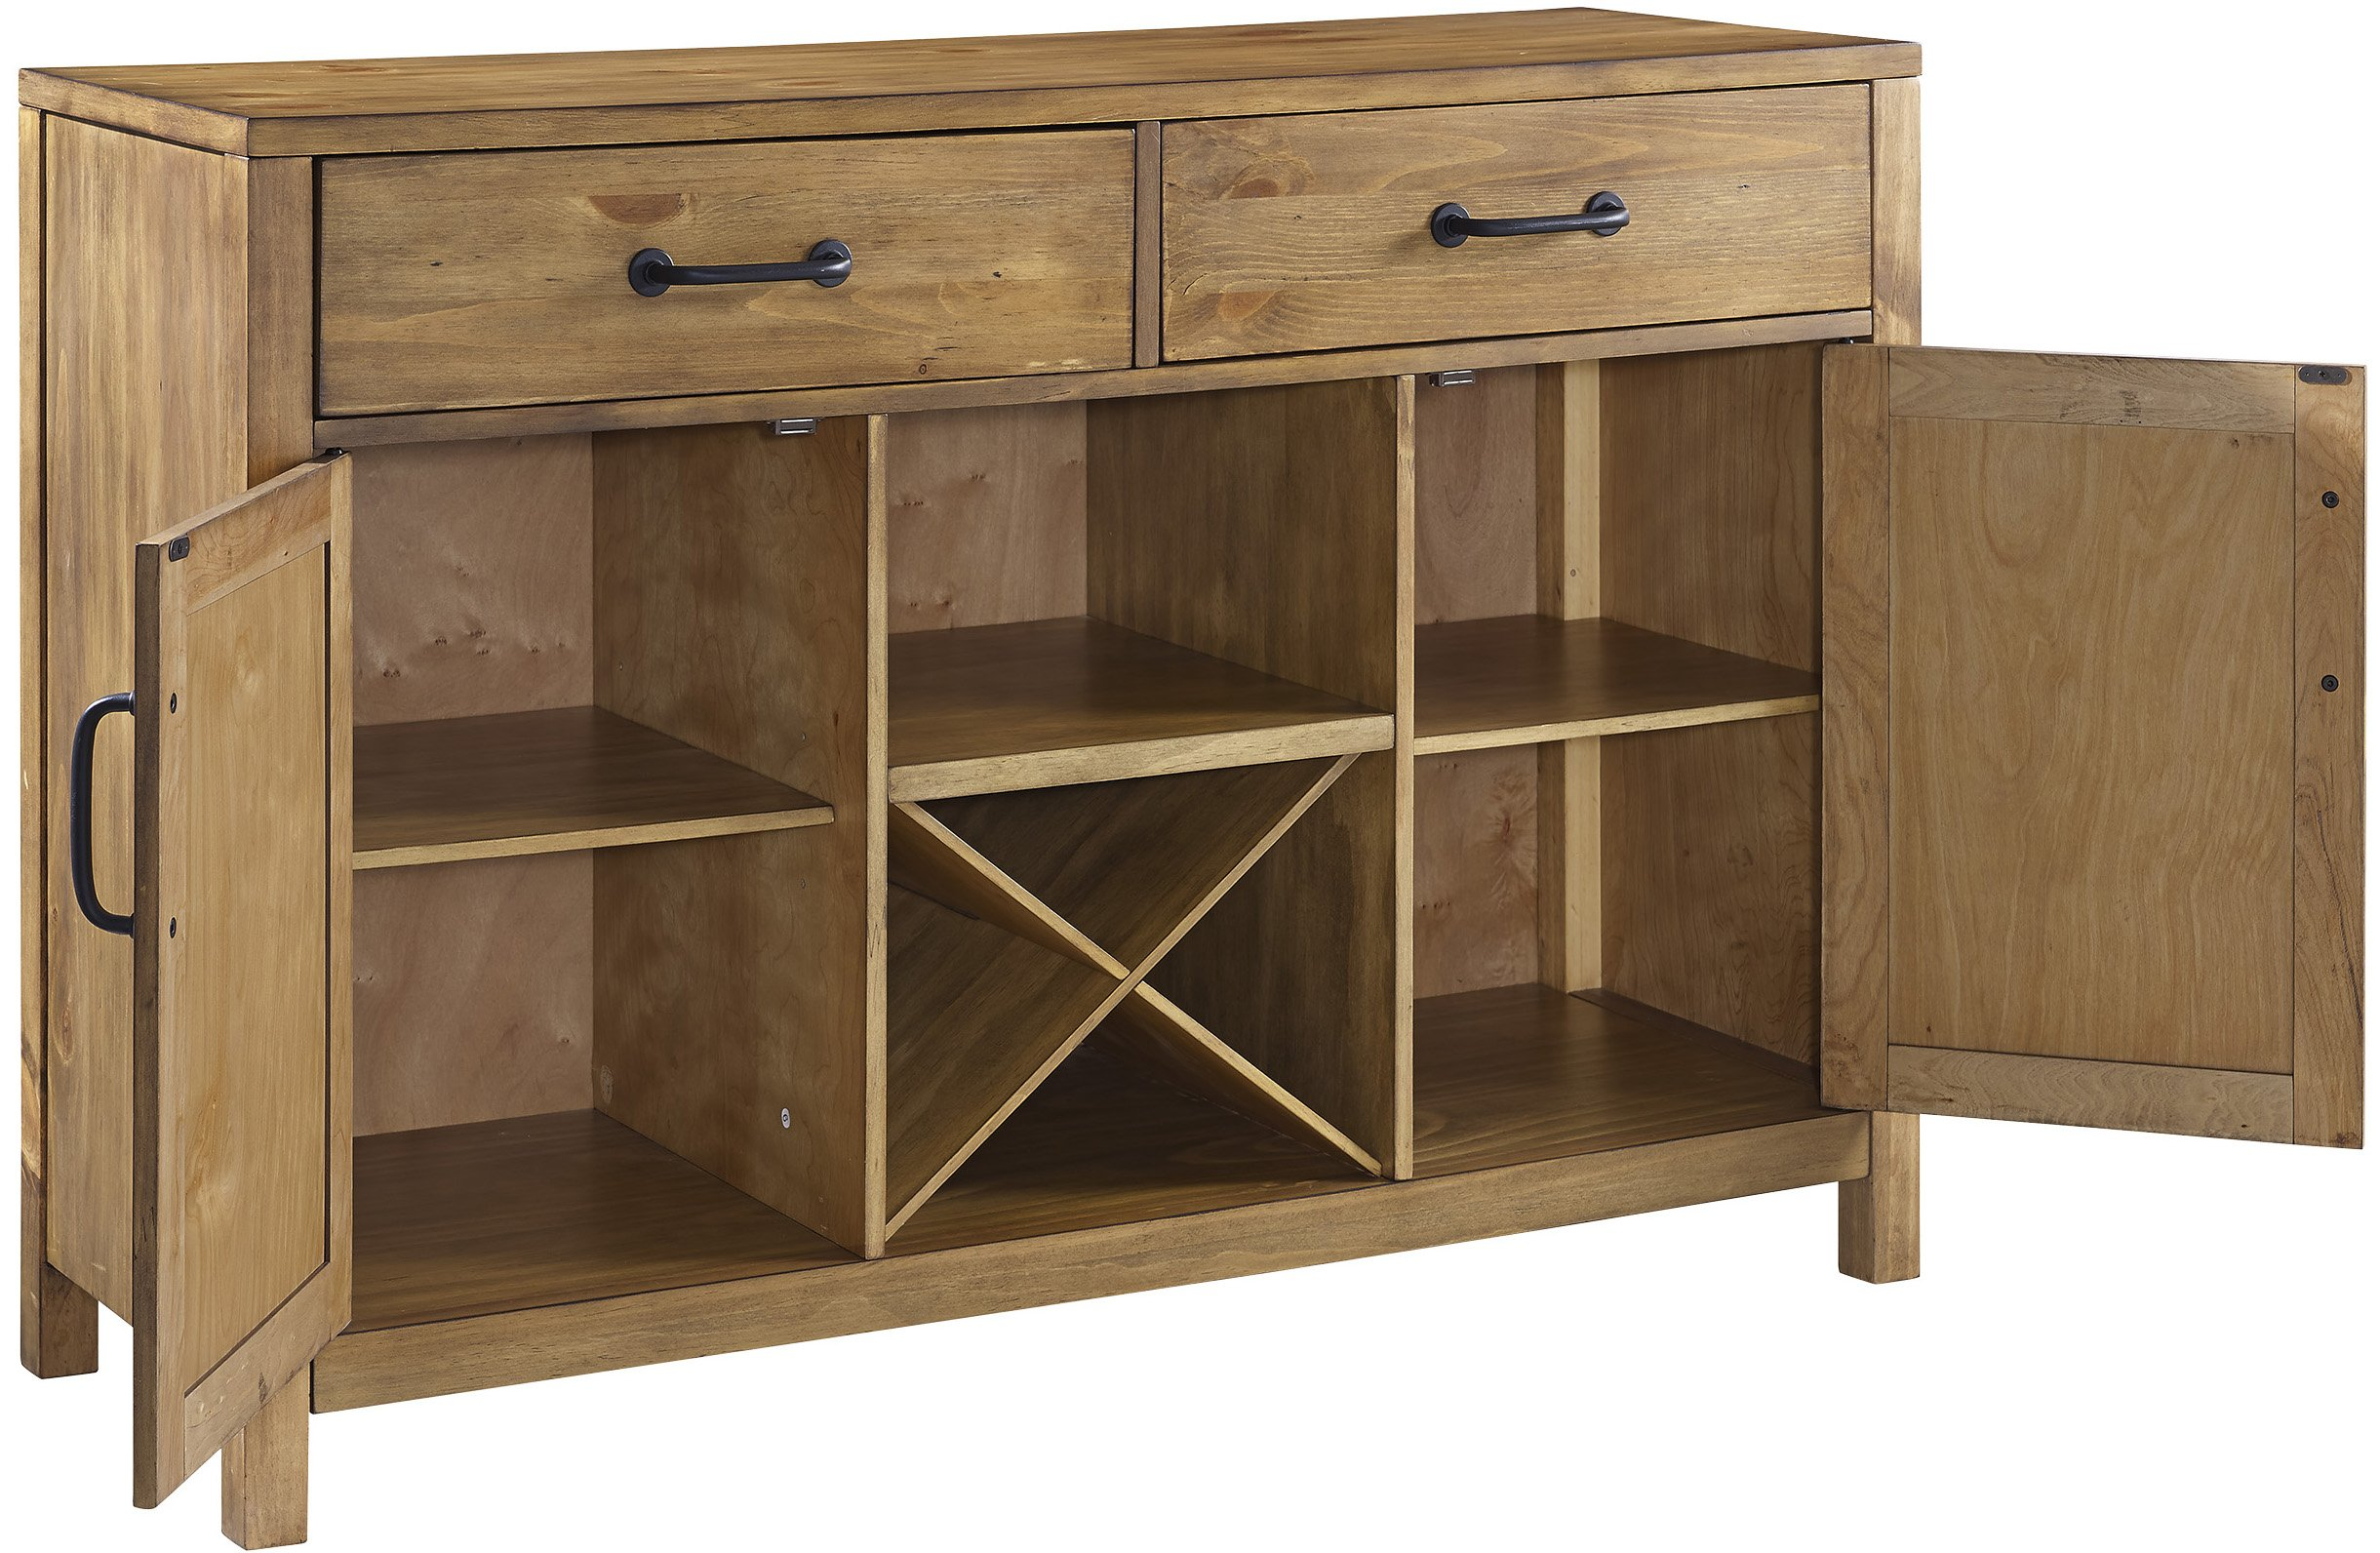 Crosley Furniture Roots Buffet Dining Room Storage - Natural by Crosley Furniture (Image #2)